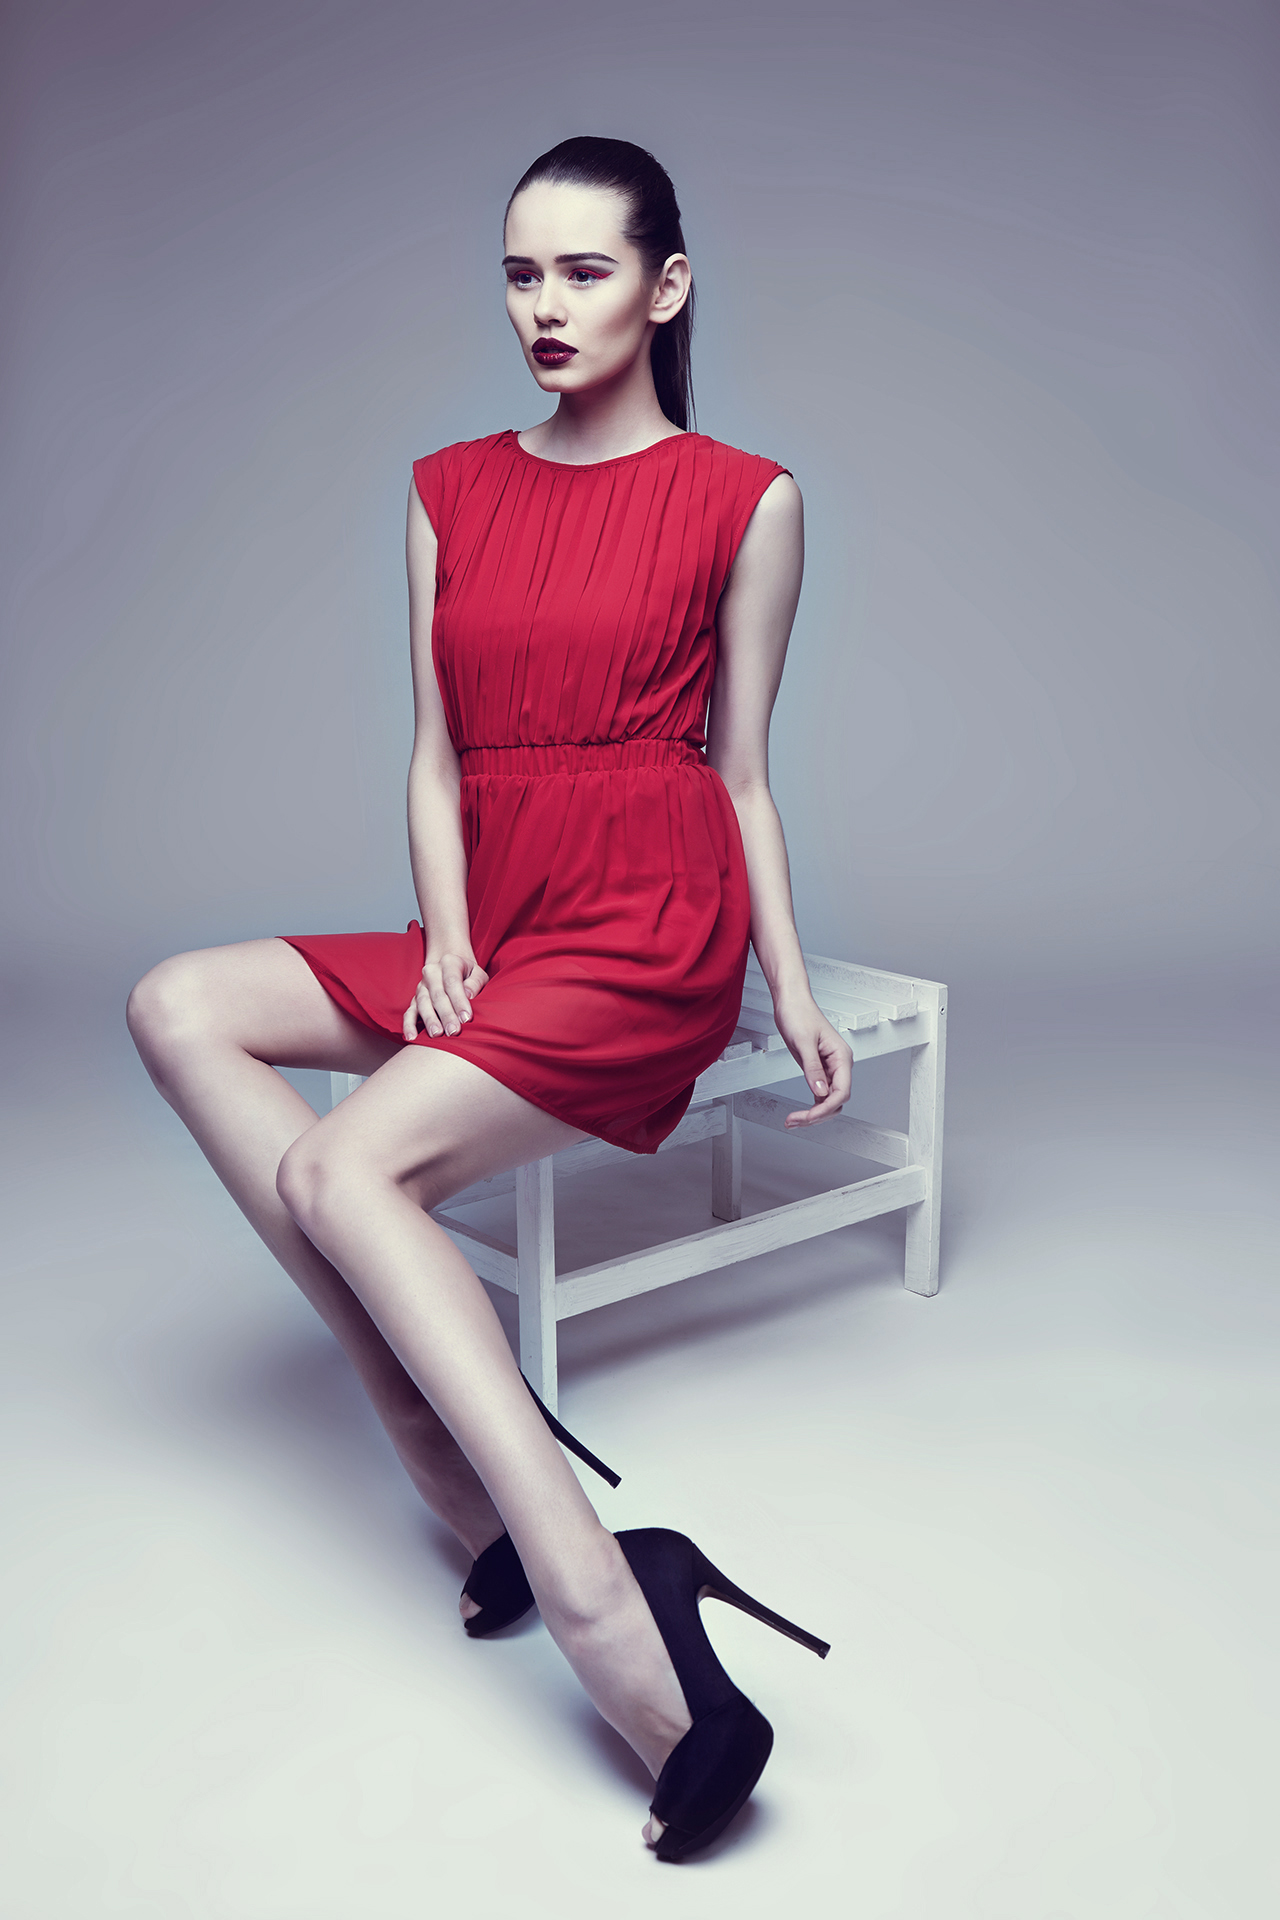 Fashion Model in Red Dress